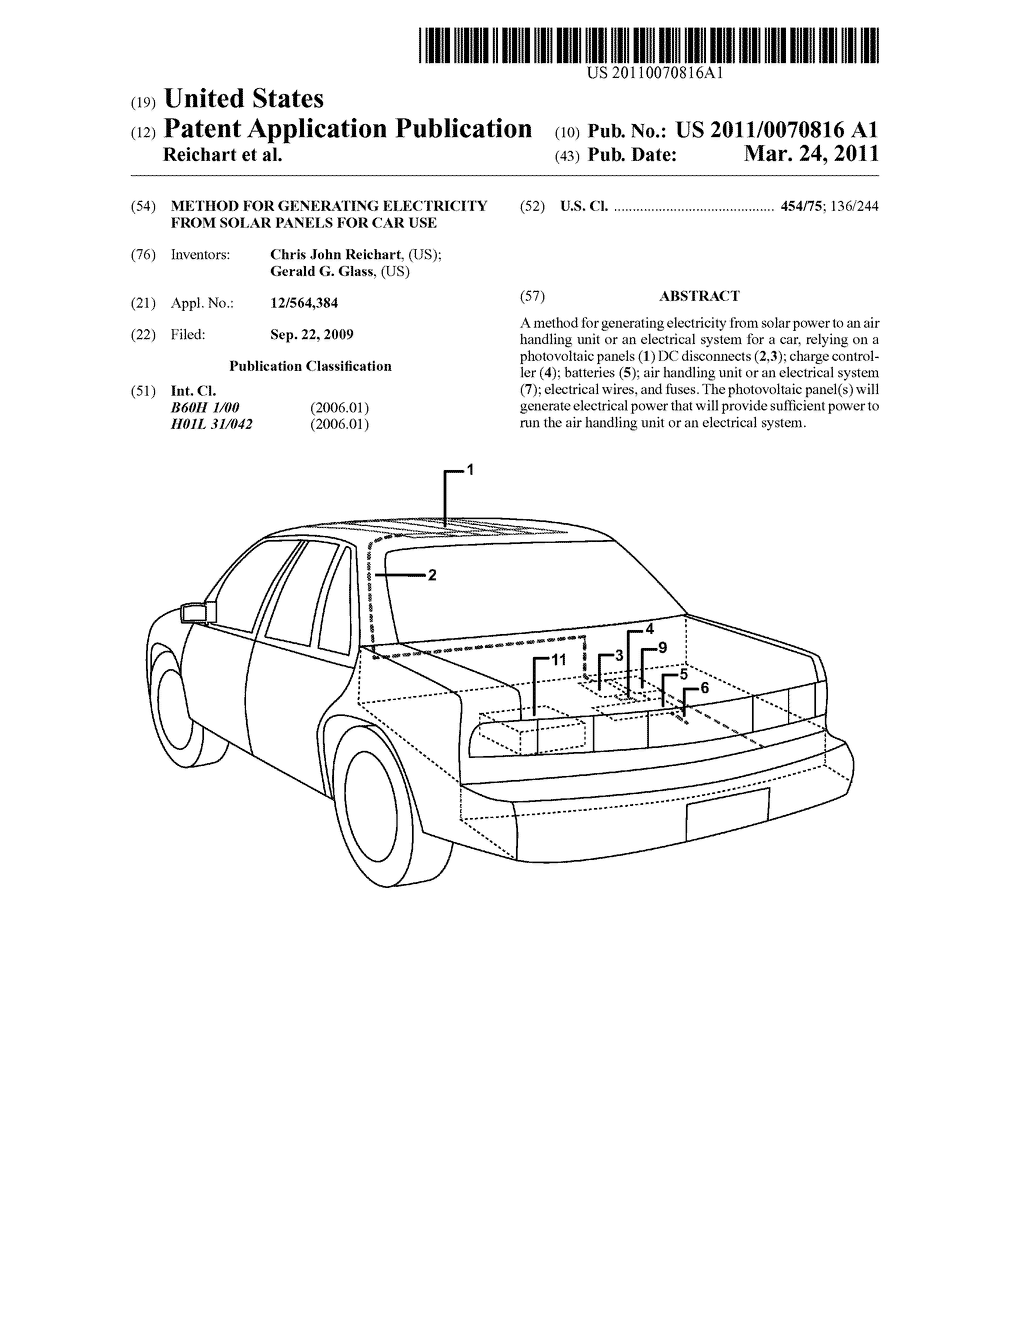 hight resolution of method for generating electricity from solar panels for car use diagram schematic and image 01